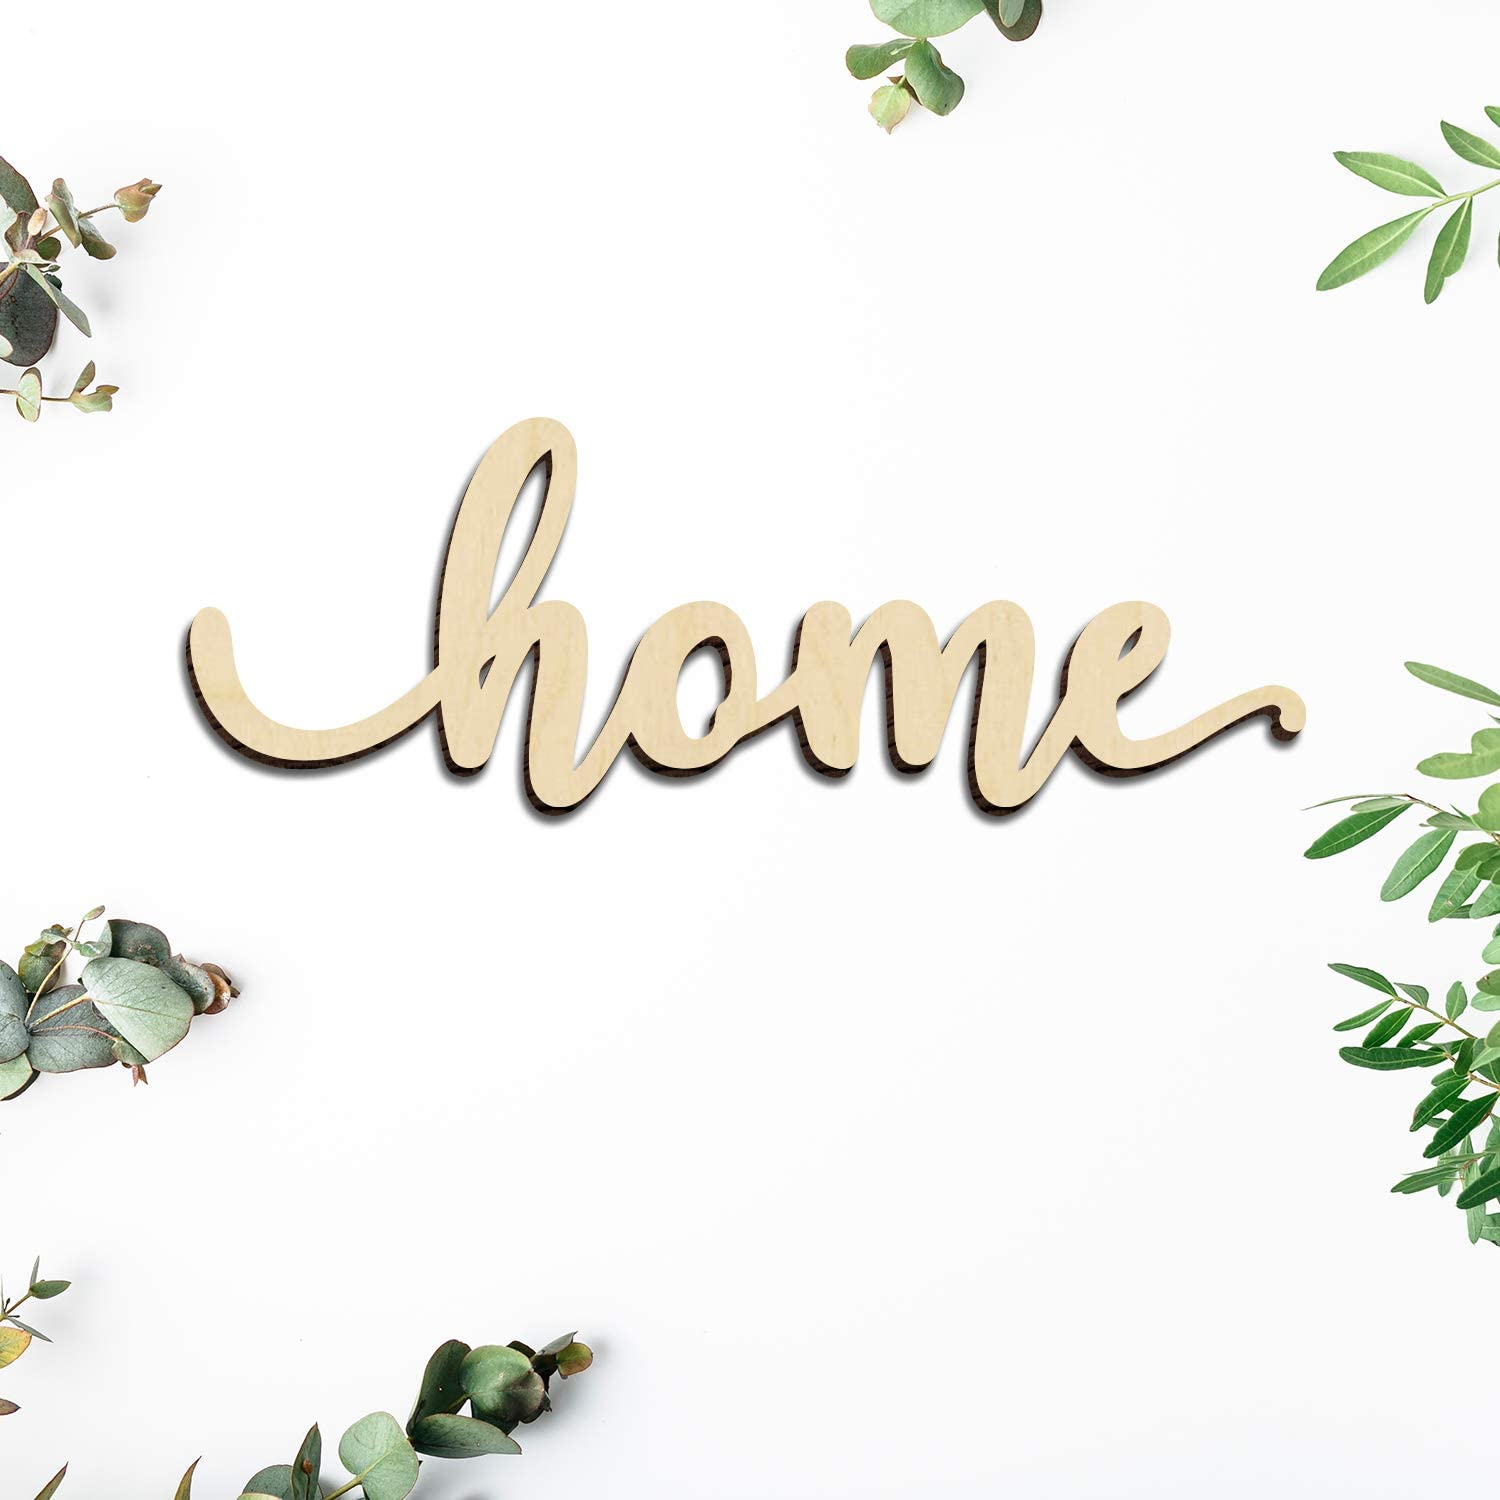 Zhuper Wood Home Sign Wall Decor Wood Script Home Gallery Wall Sign Wall Art Unfinished Rustic Word Farmhouse Decoration 5 Year Anniversary Housewarming Gift 12